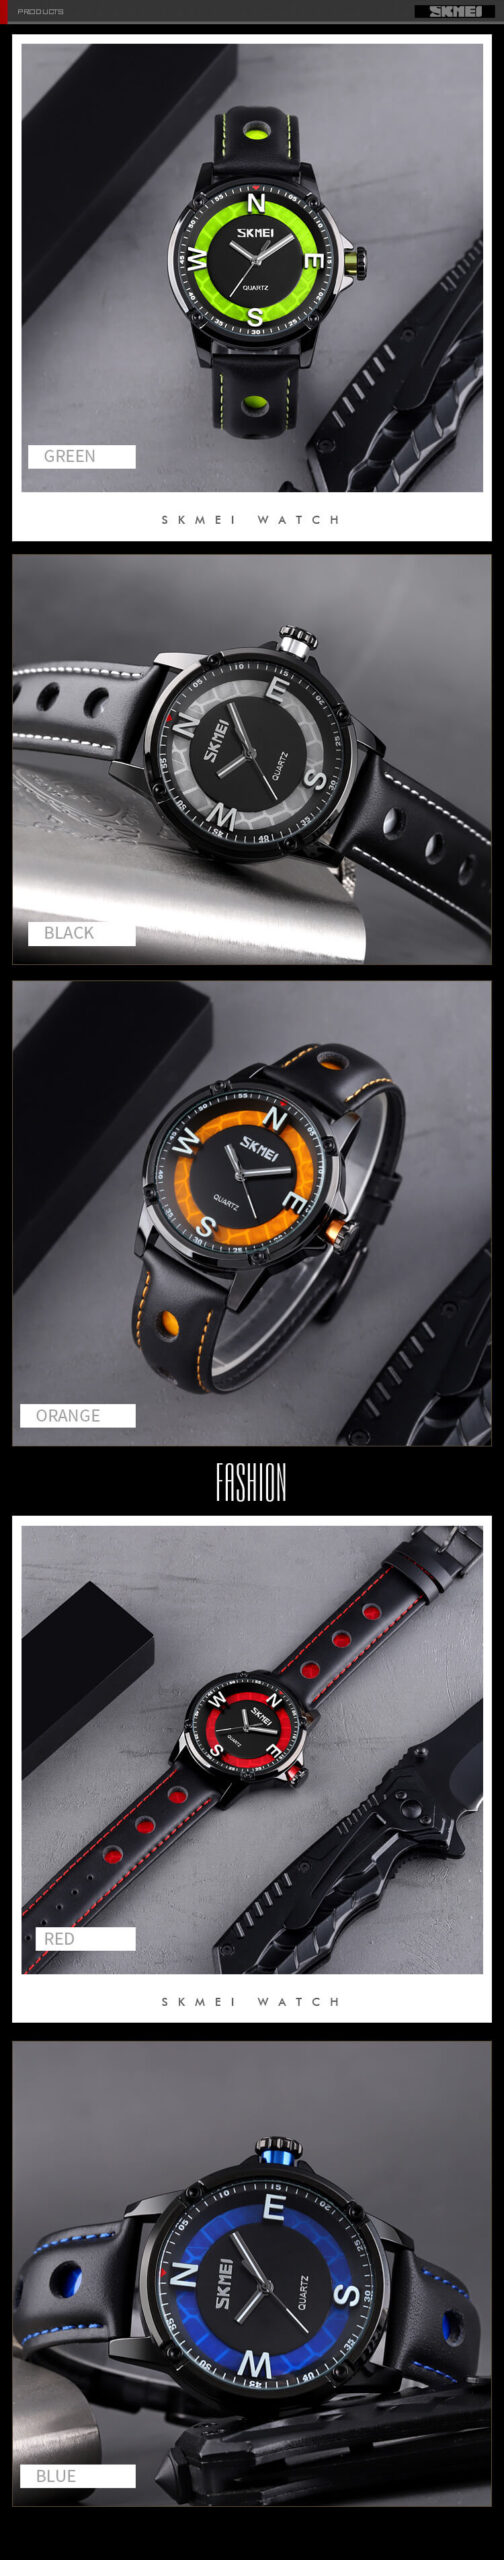 Men's Watch Black Leather Band 2